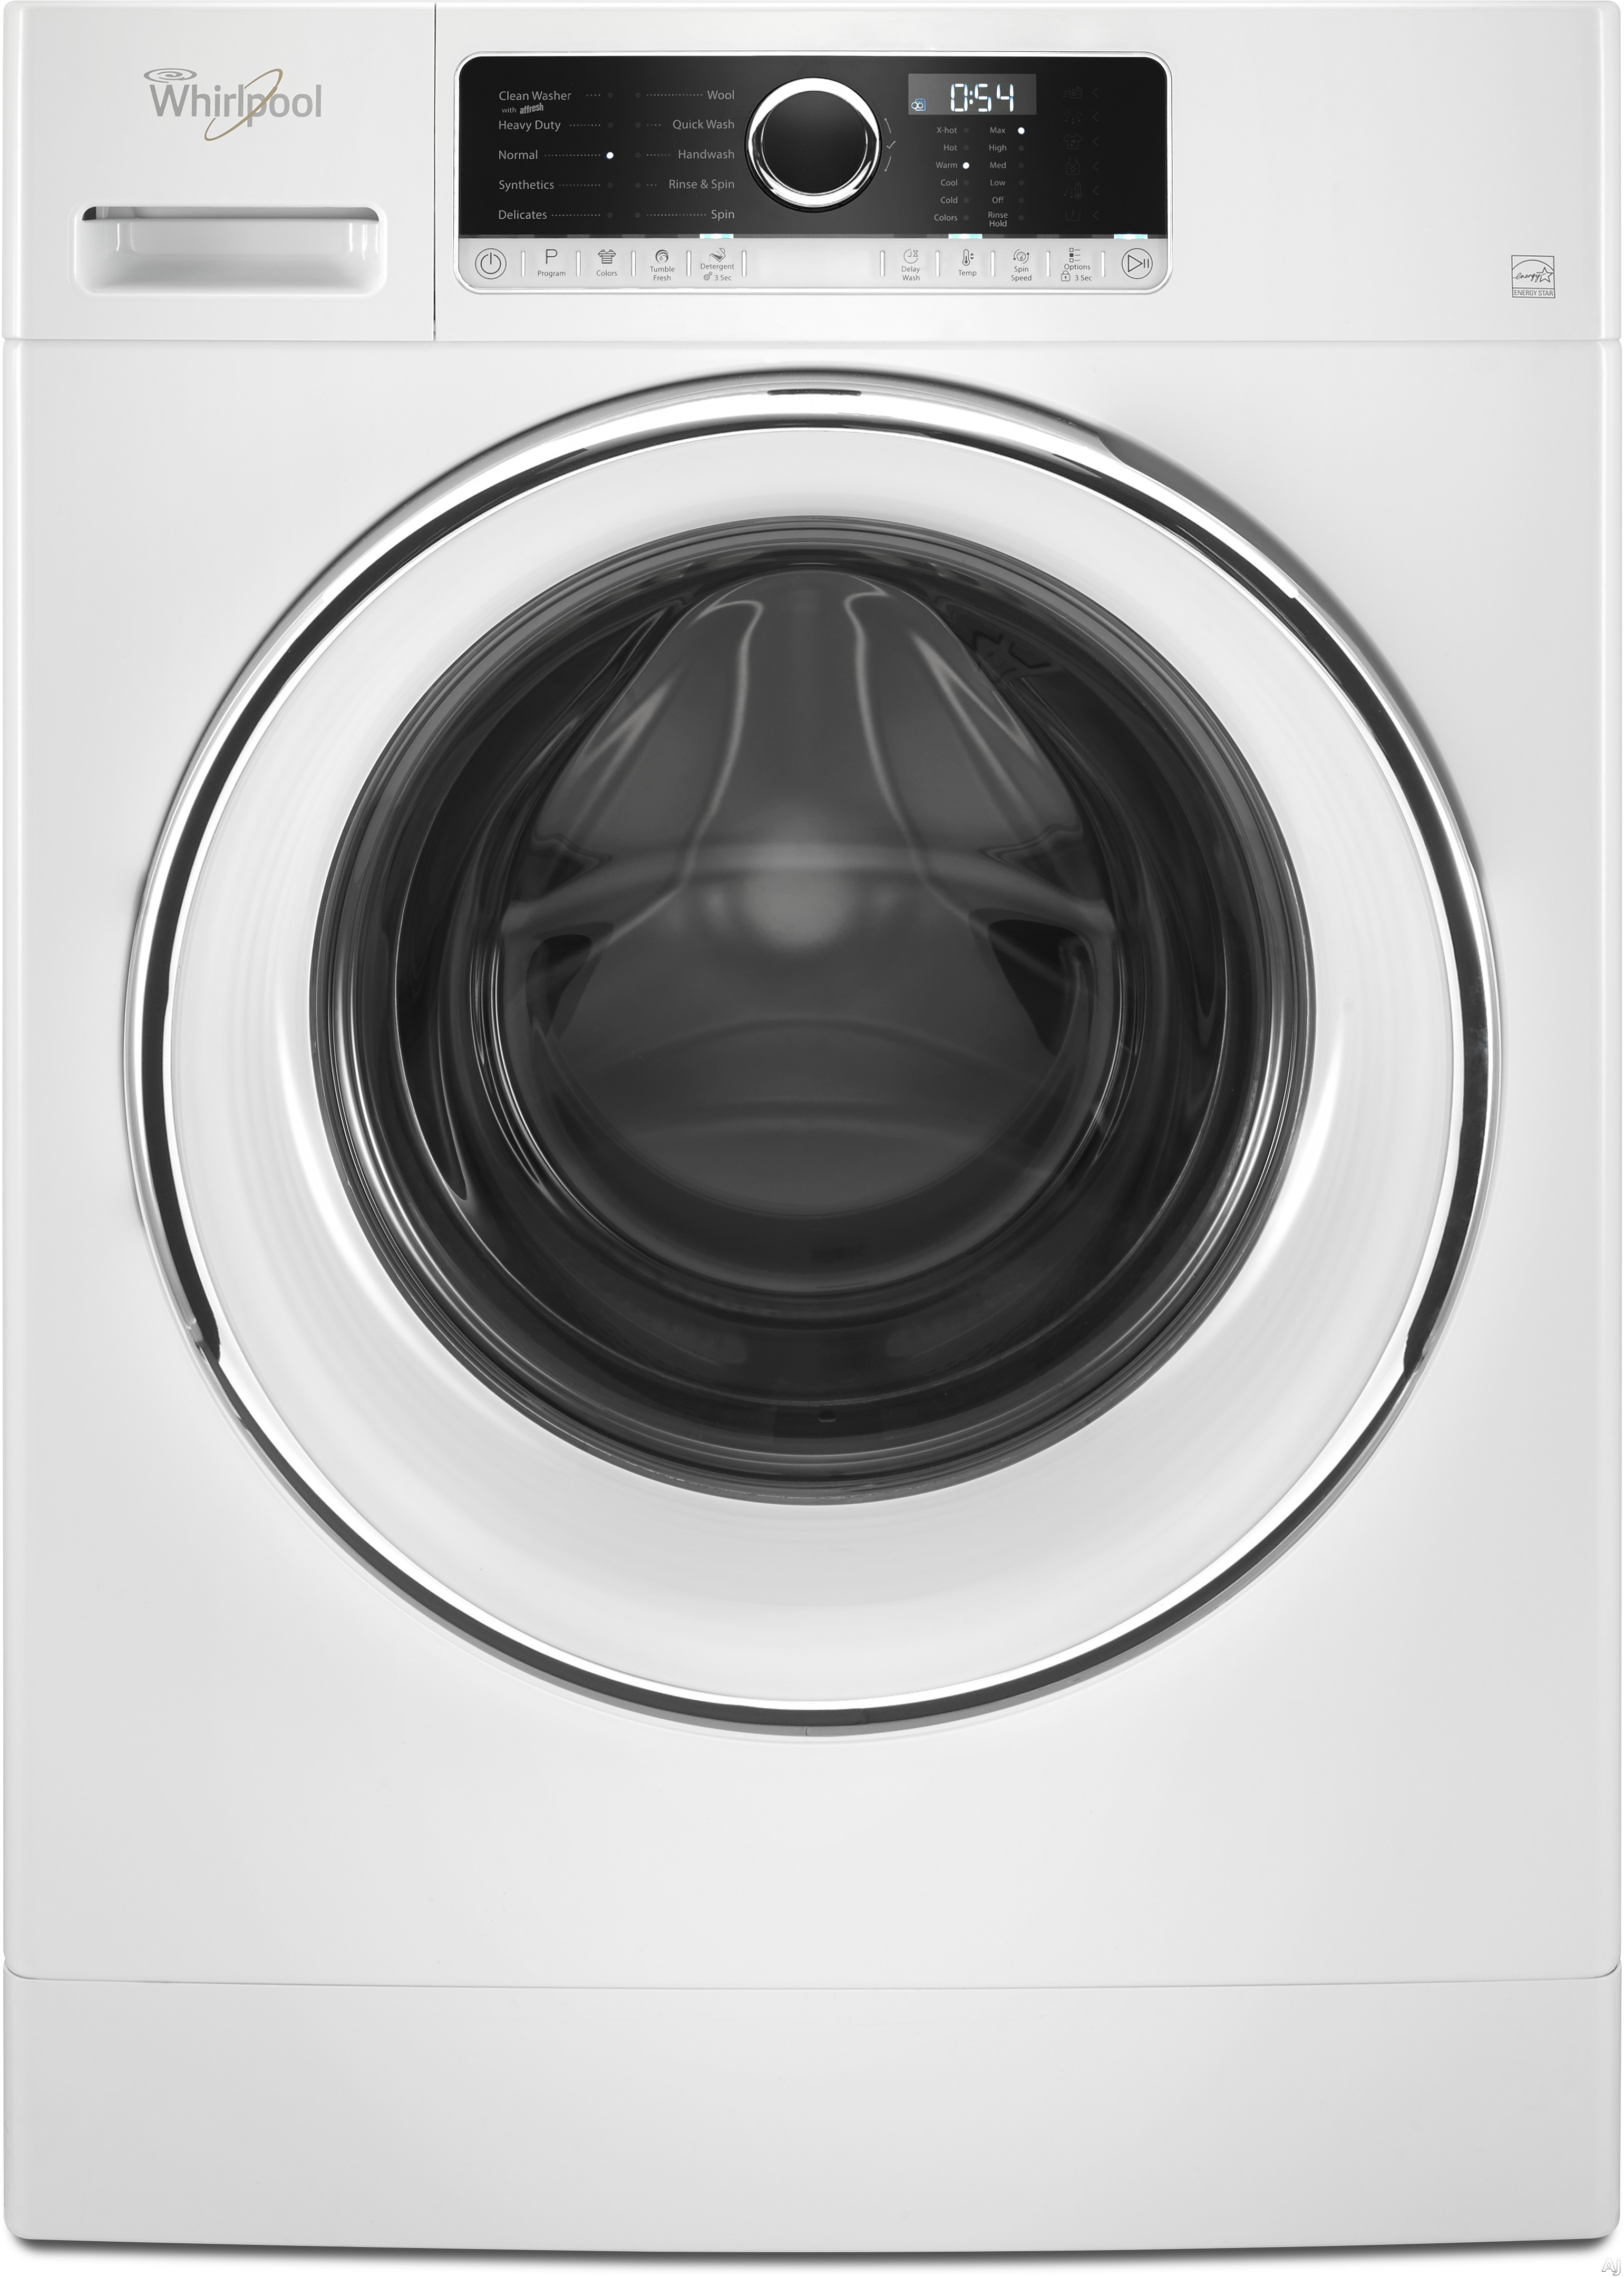 Image of Whirlpool WFW5090GW 24 Inch 2.3 cu. ft. Compact Front Load Washer with Cold Water PreWash for Stains, Heavy Soil Cycle, Quick Wash Cycle, Colors Option, TumbleFresh, Guided Mode, Wool Cycle, Handwash Cycle, Synthetics Cycle and Stainless Steel Drum